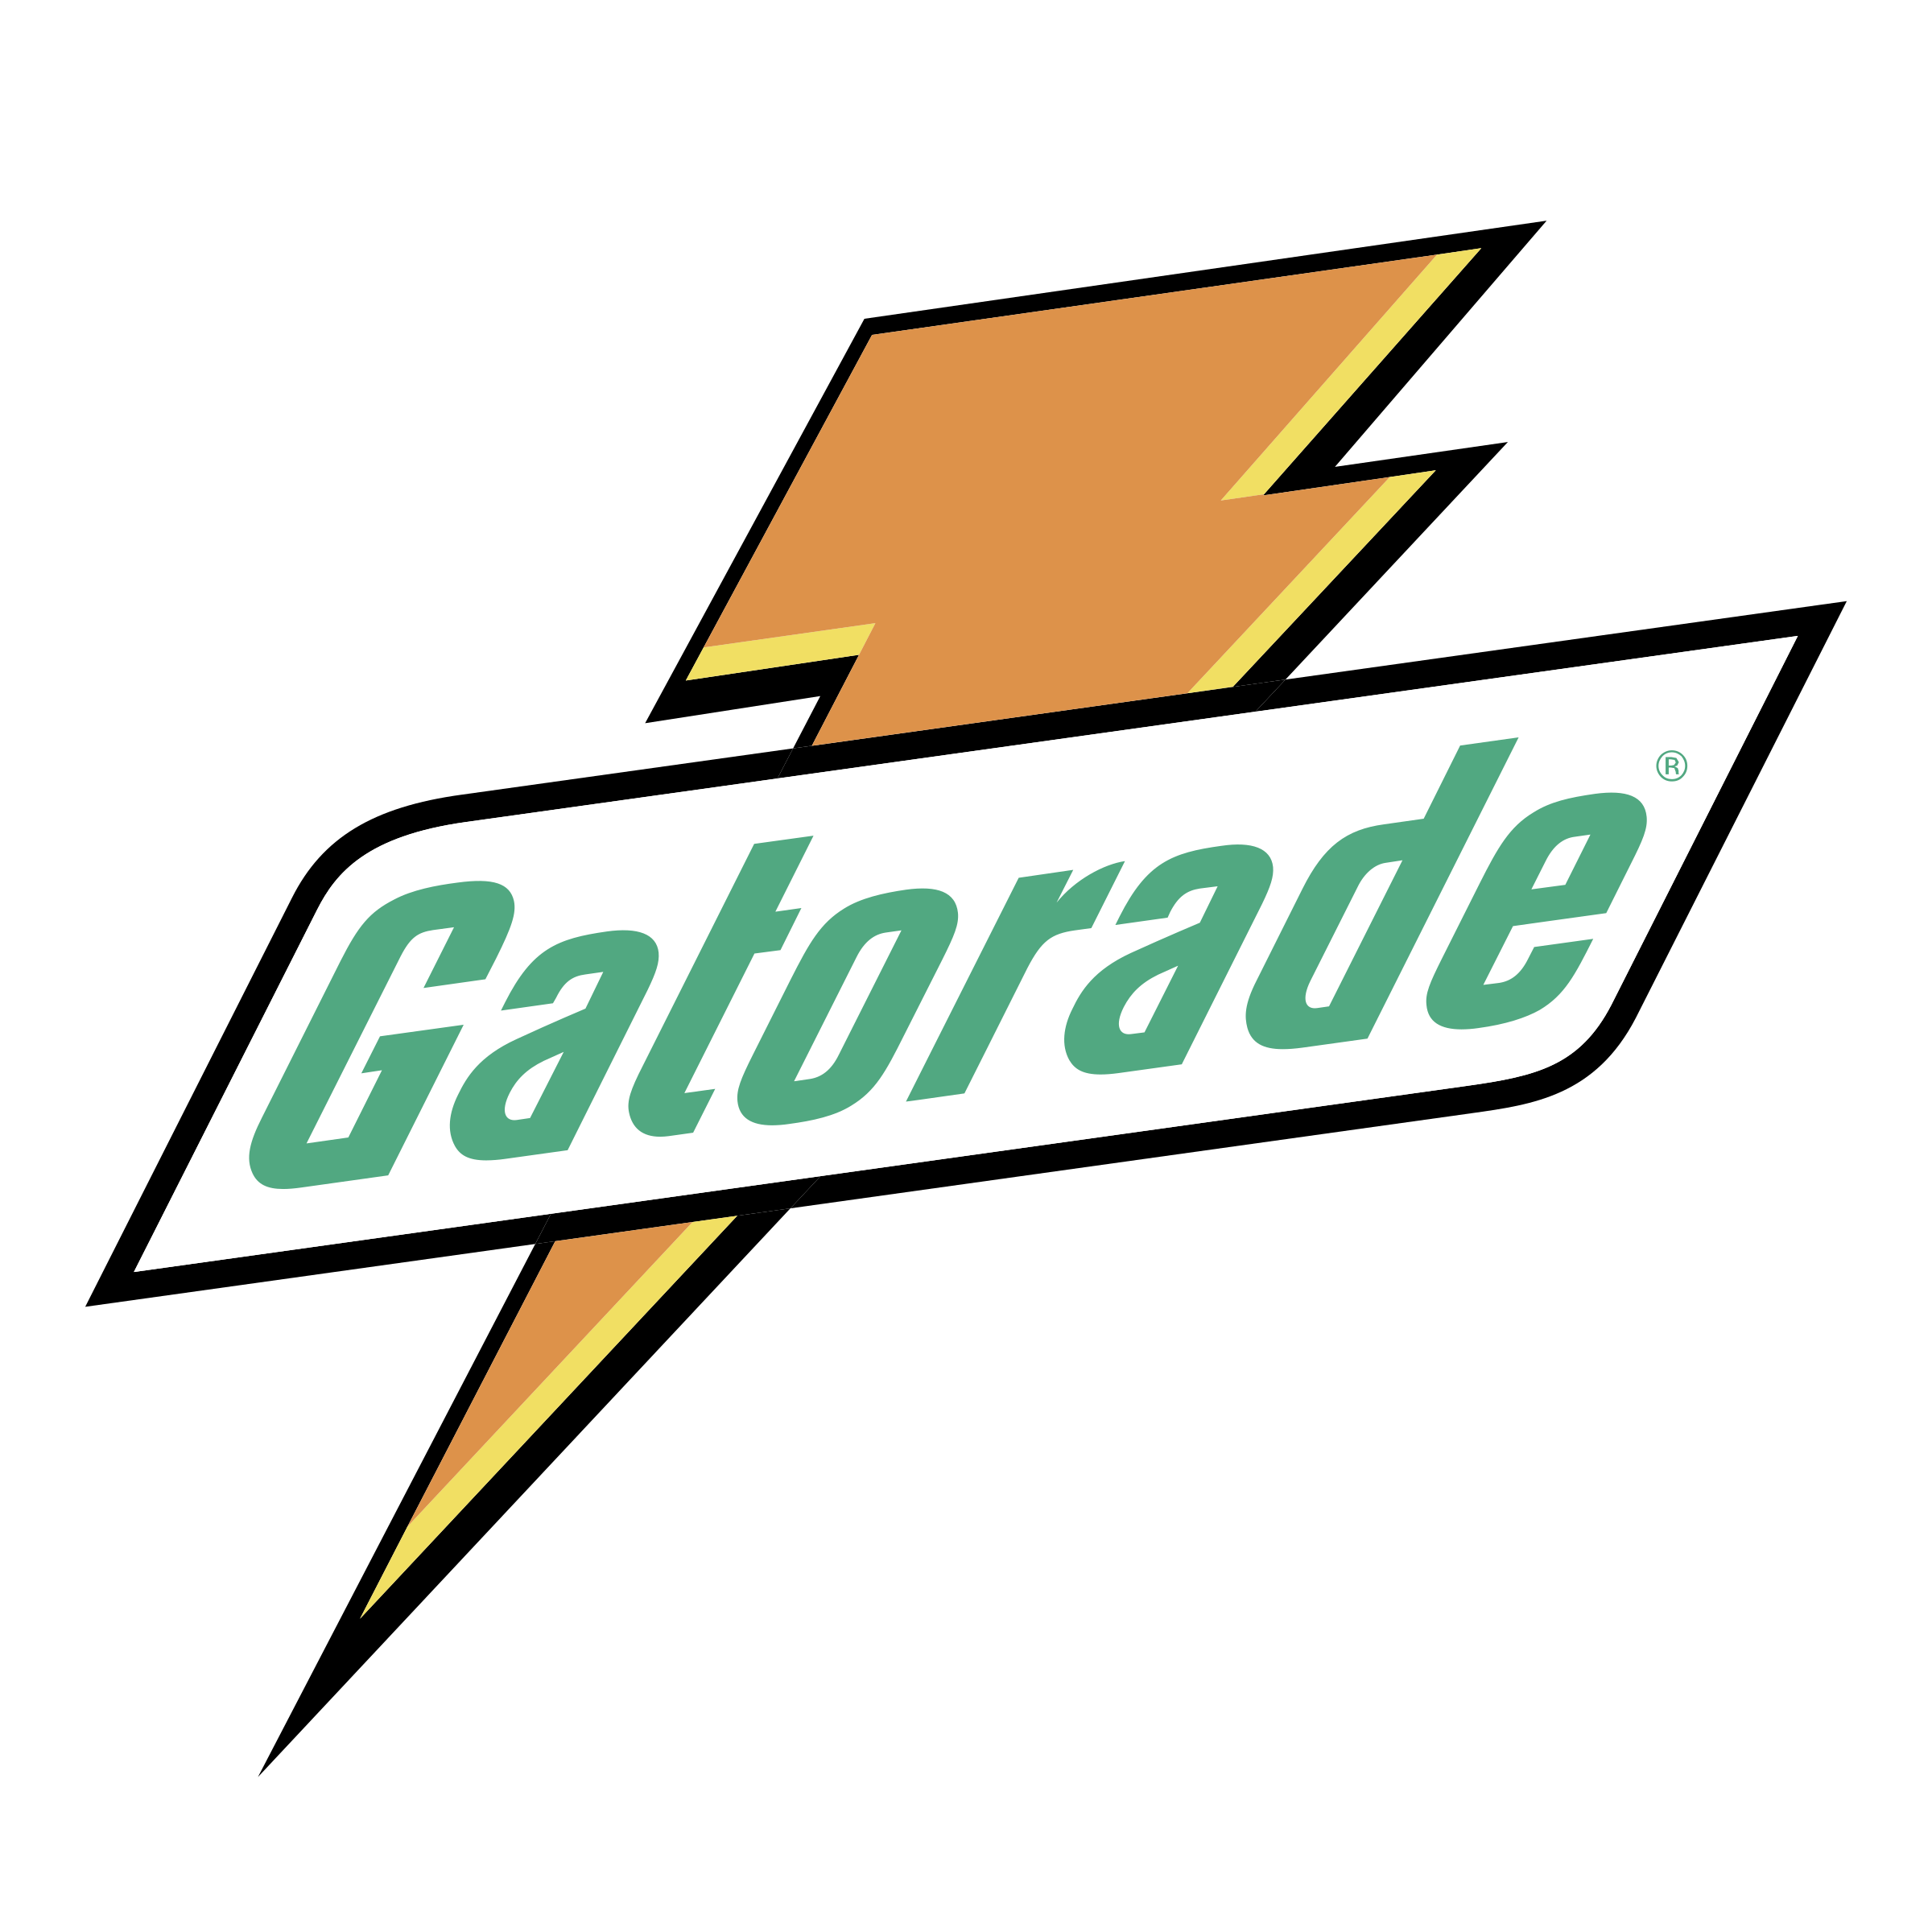 Gatorade transparent clipart. Logo png svg vector